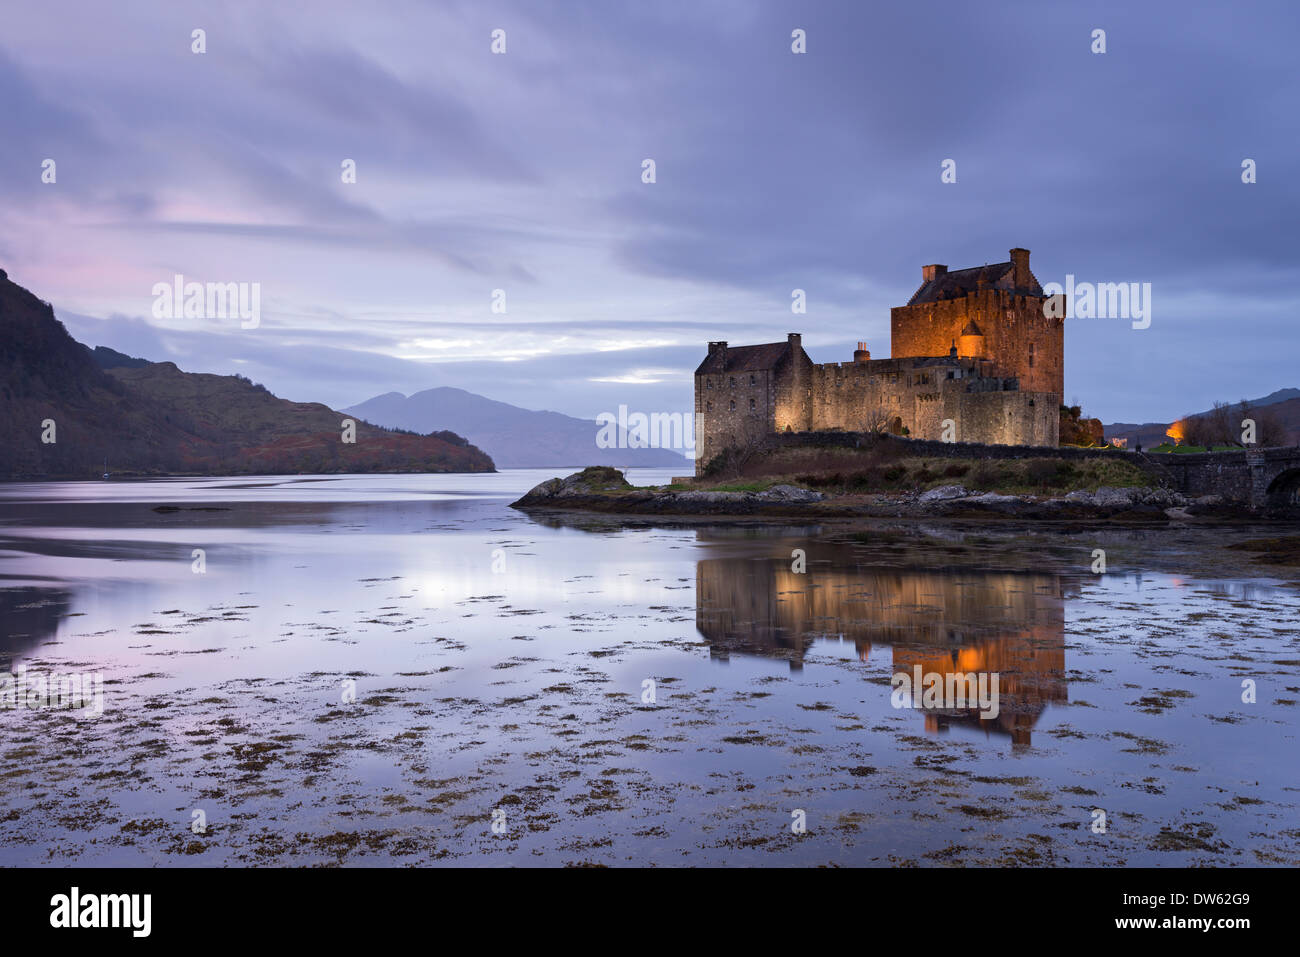 Twilight over Eilean Donan Castle on Loch Duich, Dornie, Scotland. Winter (November) 2013. - Stock Image